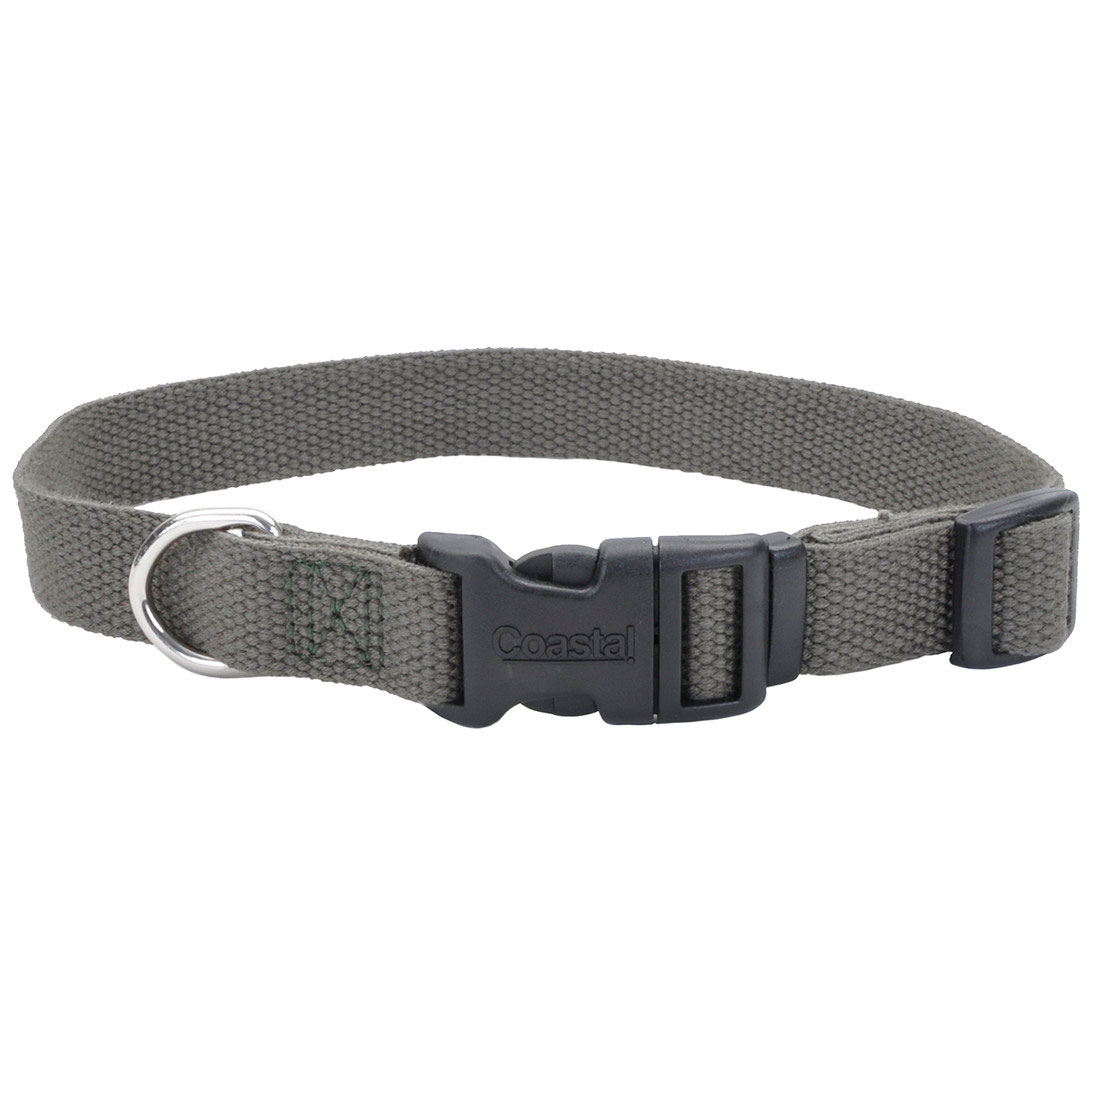 New Earth Soy Adjustable Dog Collar, Forest, 5/8-inx8-12-in